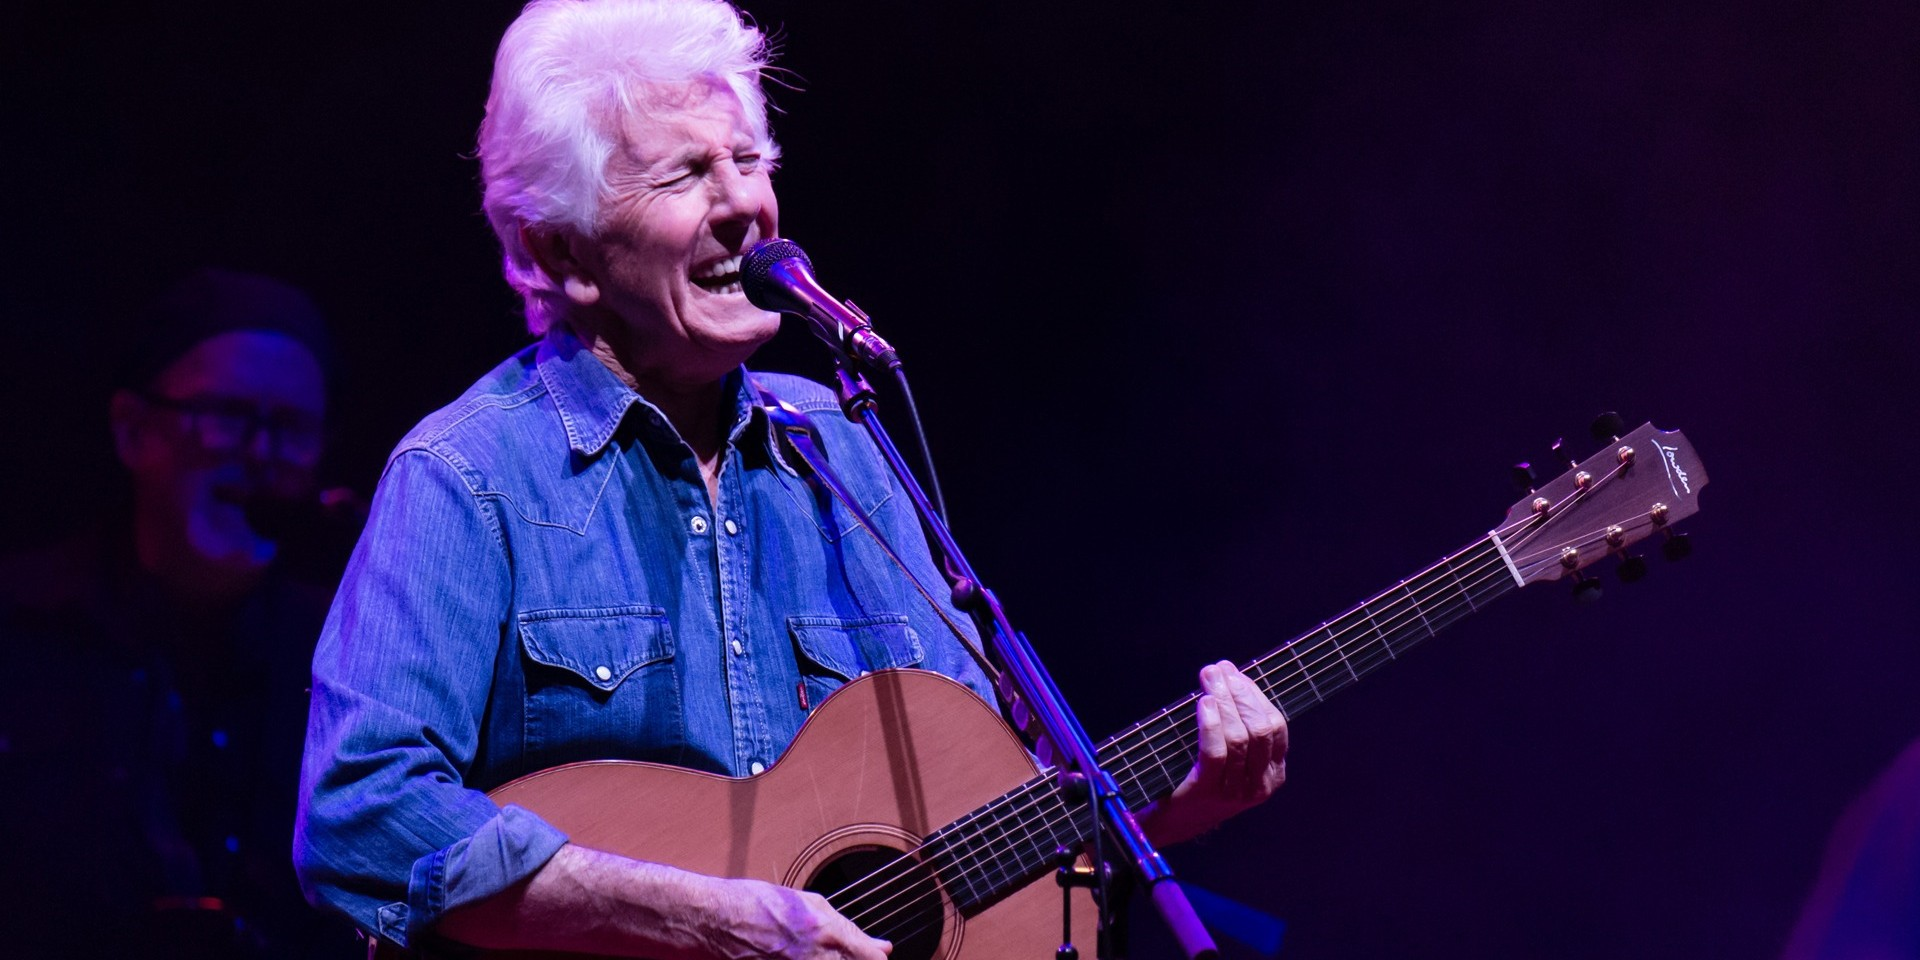 """WATCH: Graham Nash brands possible Trump presidency as """"terrifying"""", performs 'This Path Tonight'"""